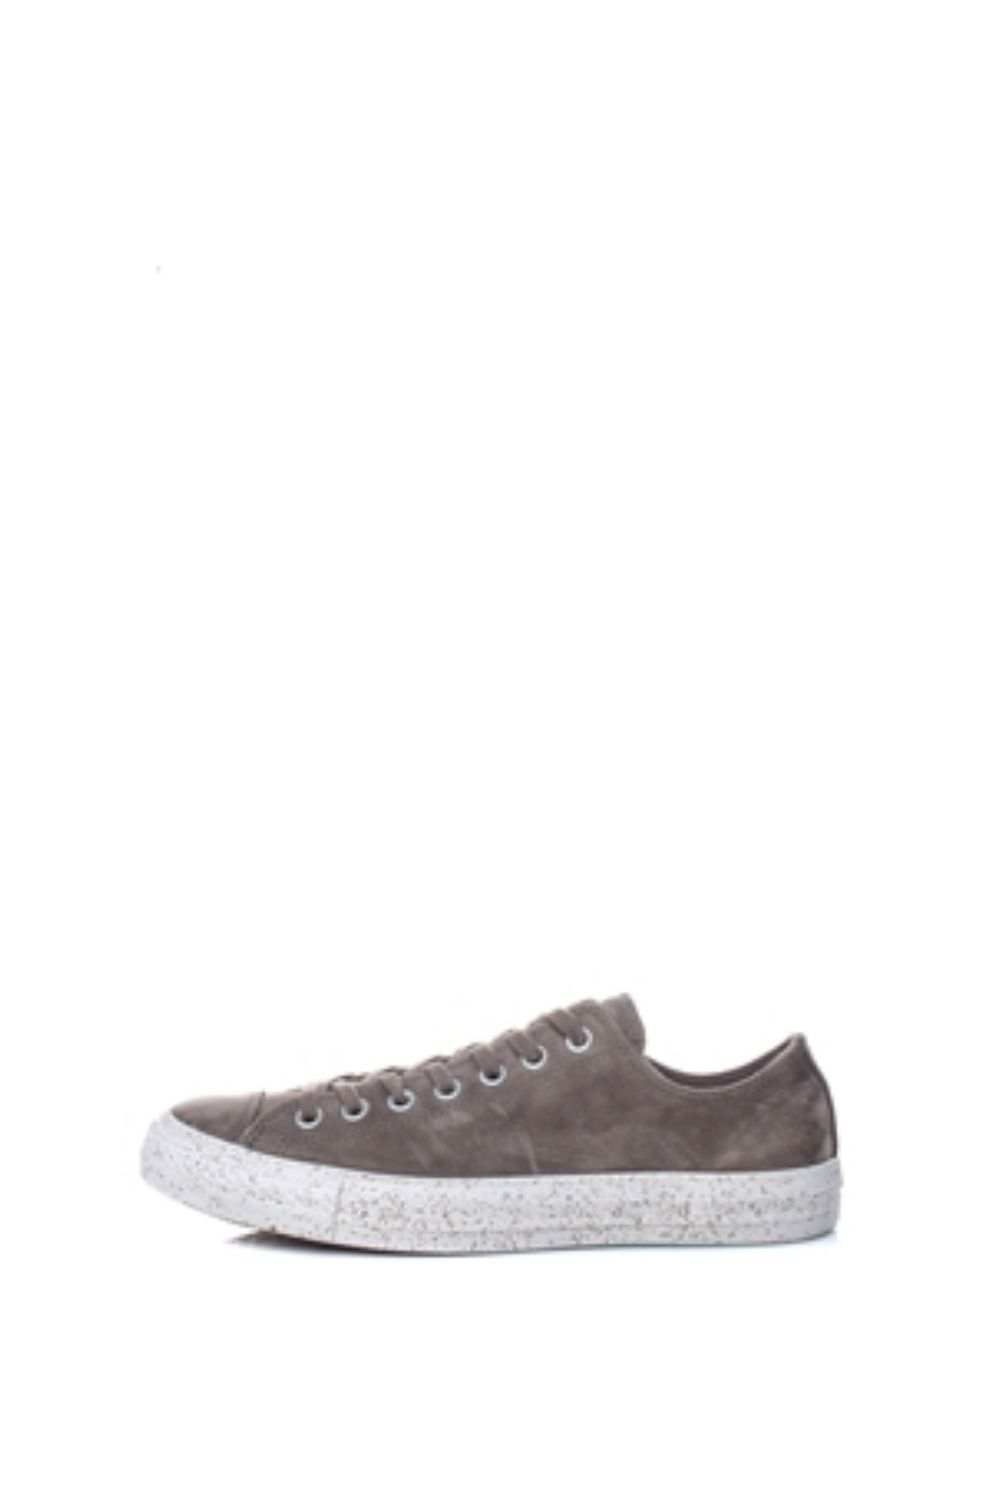 CONVERSE – Unisex sneakers CONVERSE Chuck Taylor All Star Ox γκρι